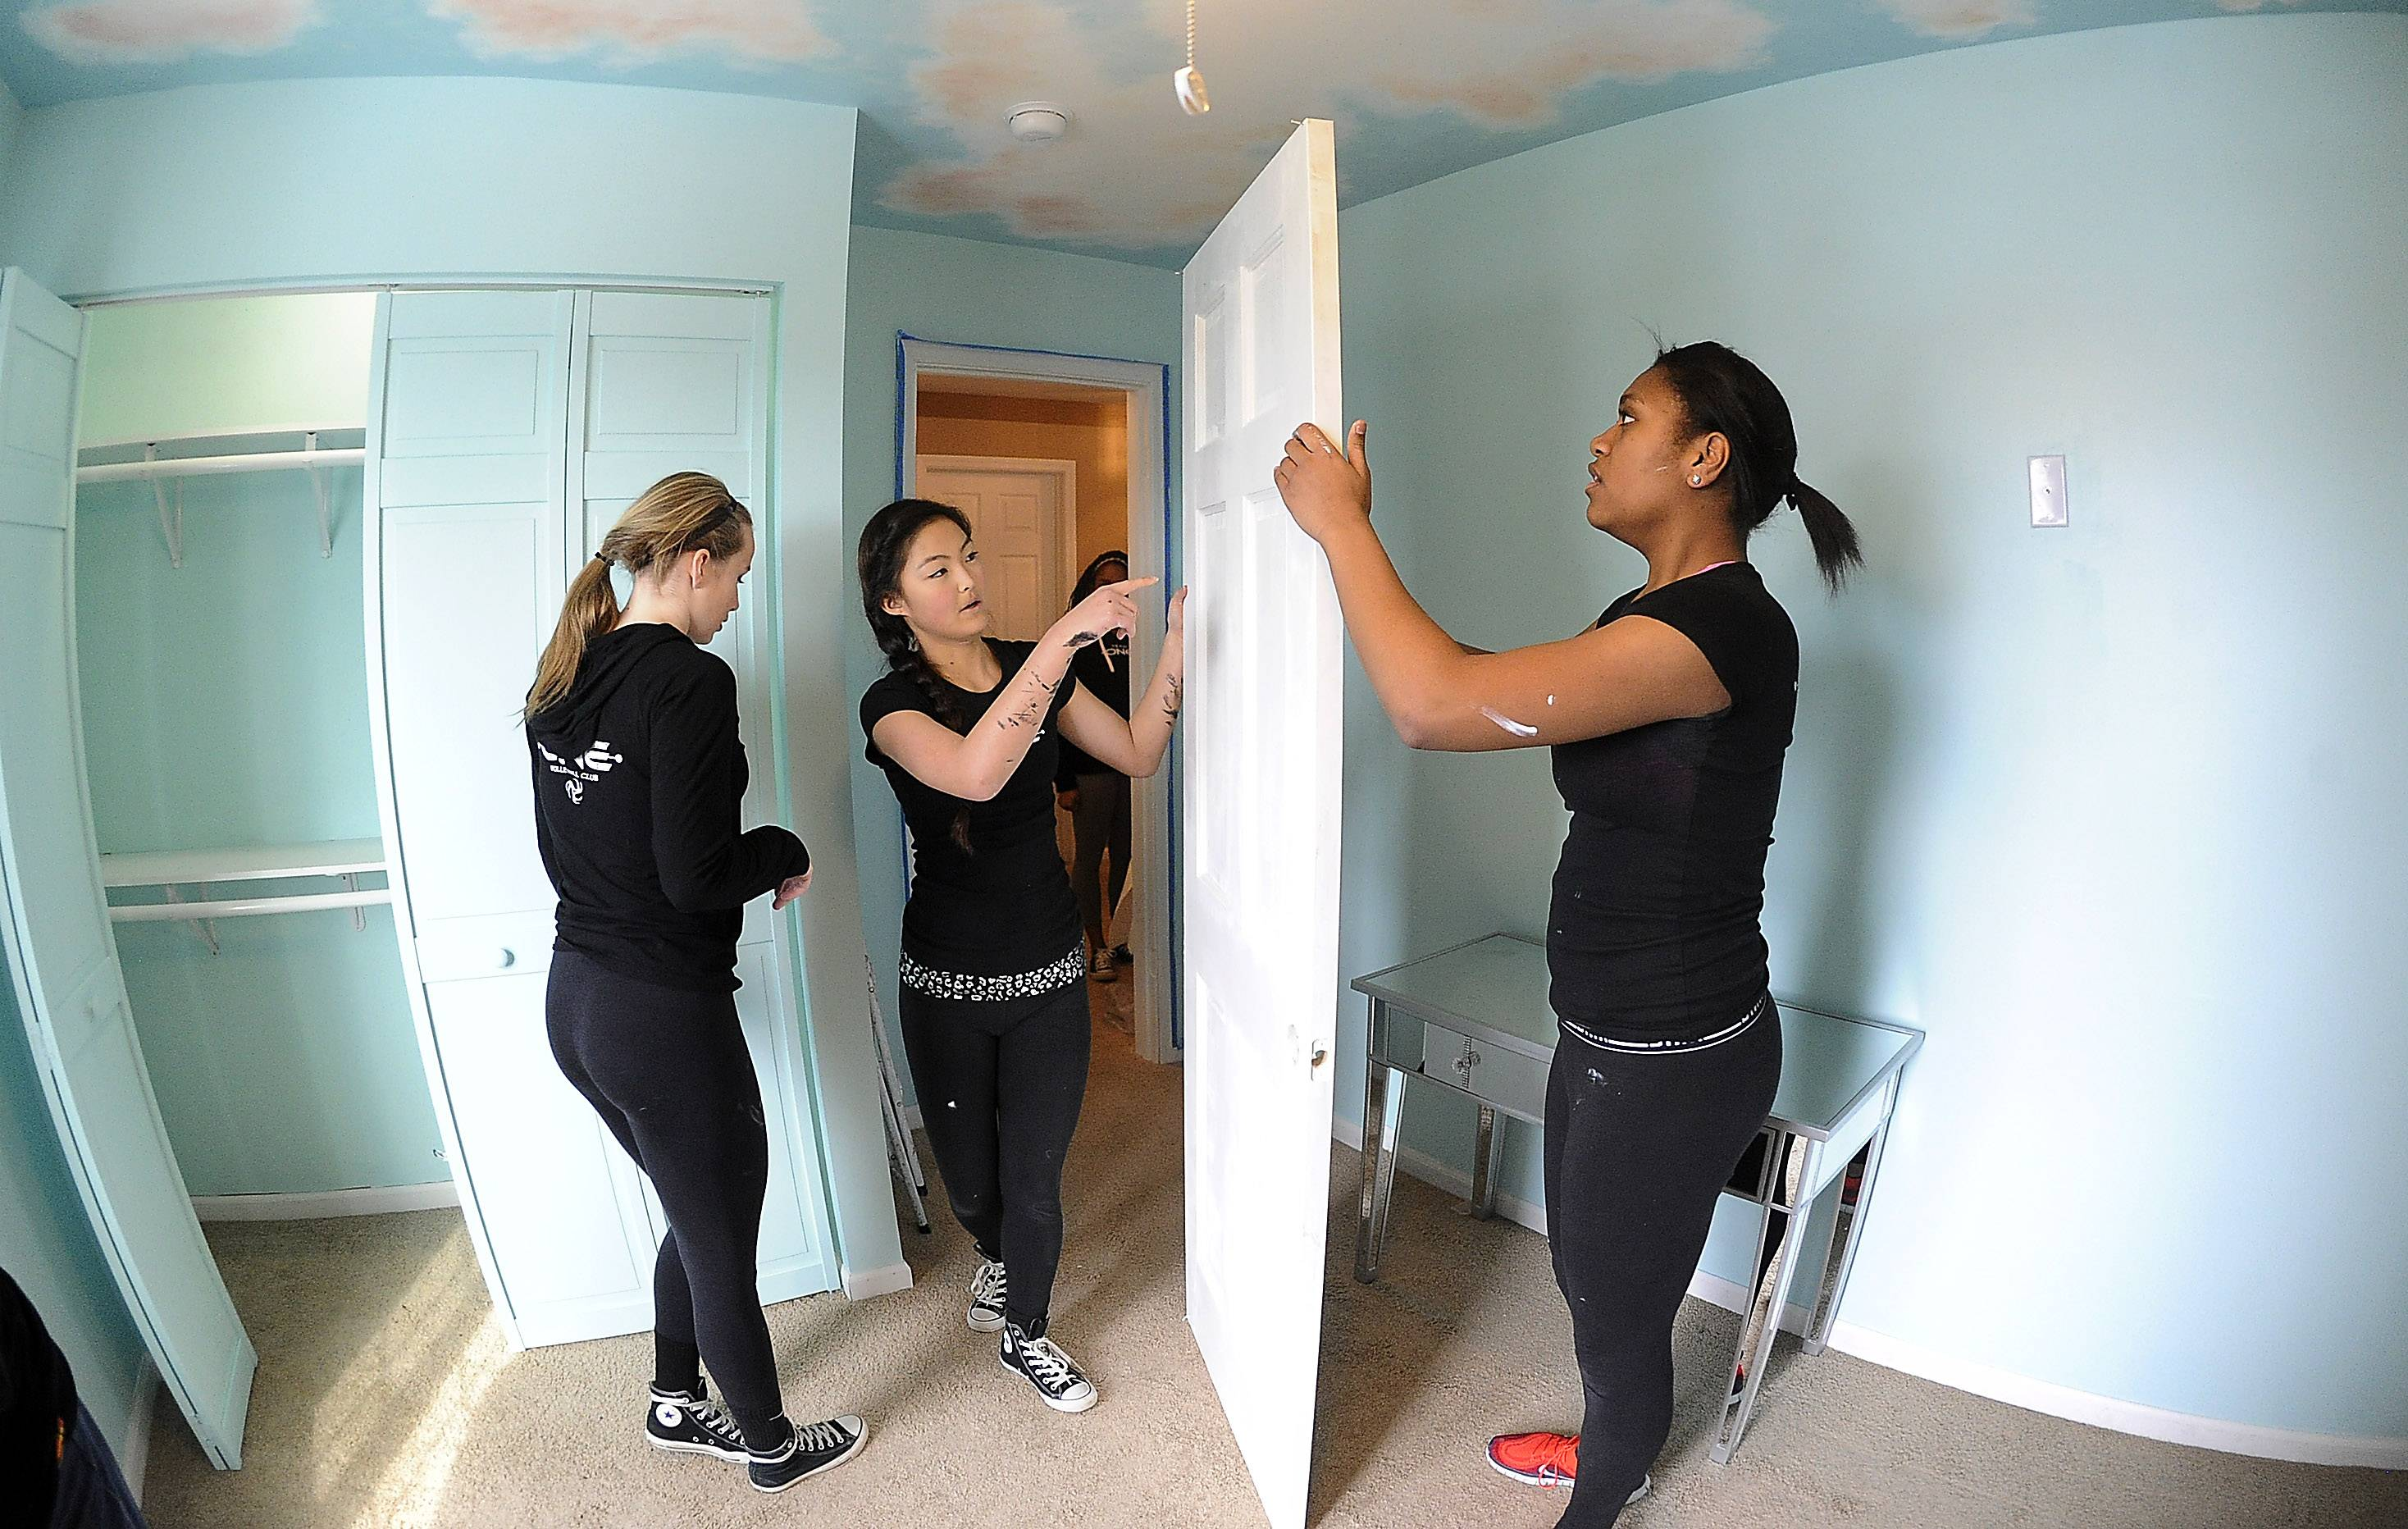 Asia Green, right, from Plainfield and her fellow teammates of Team One Volleyball Club in Aurora, Cerina Myong of Naperville, middle, and Sarah Pliml of Naperville work on the freshly painted door Saturday that is part of the makeover for a Bartlett girl with a life-threating medical condition.